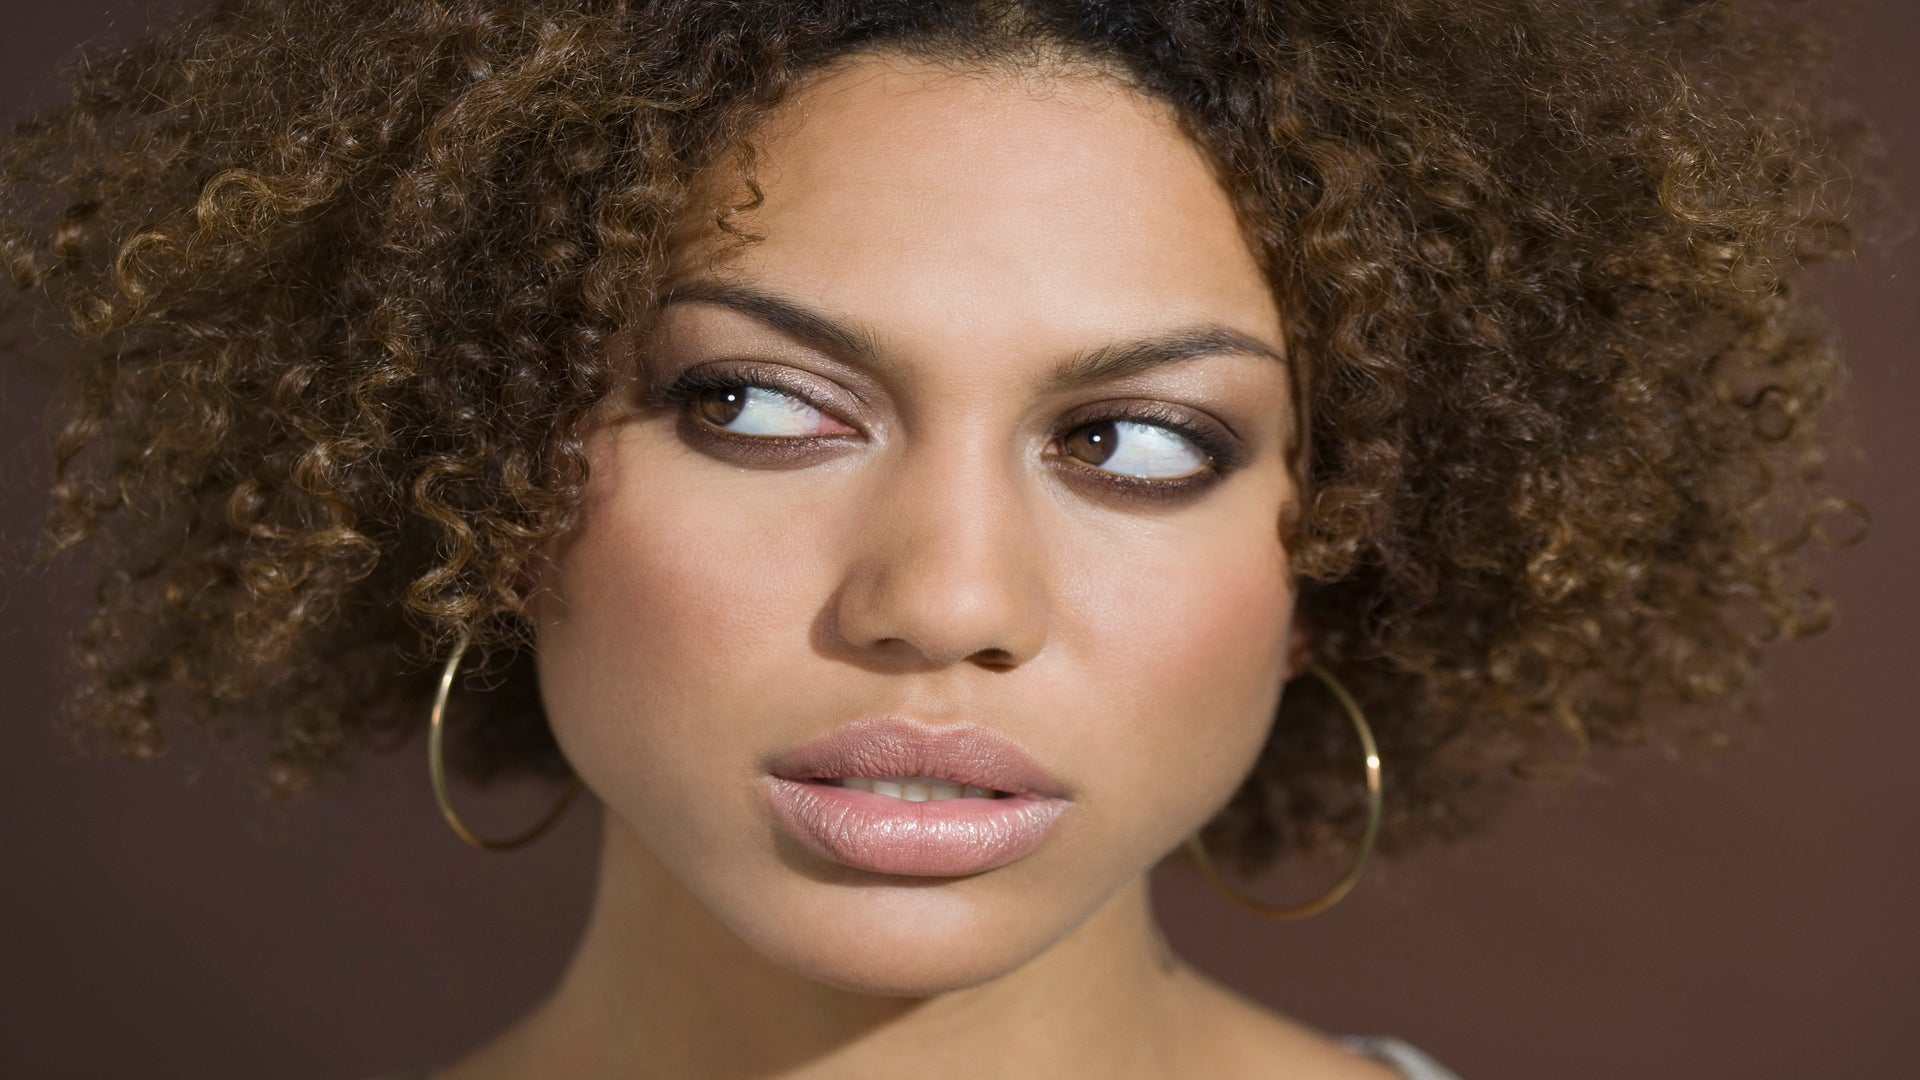 Girlfriends: 6 Signs Your Friend Can't Be Trusted